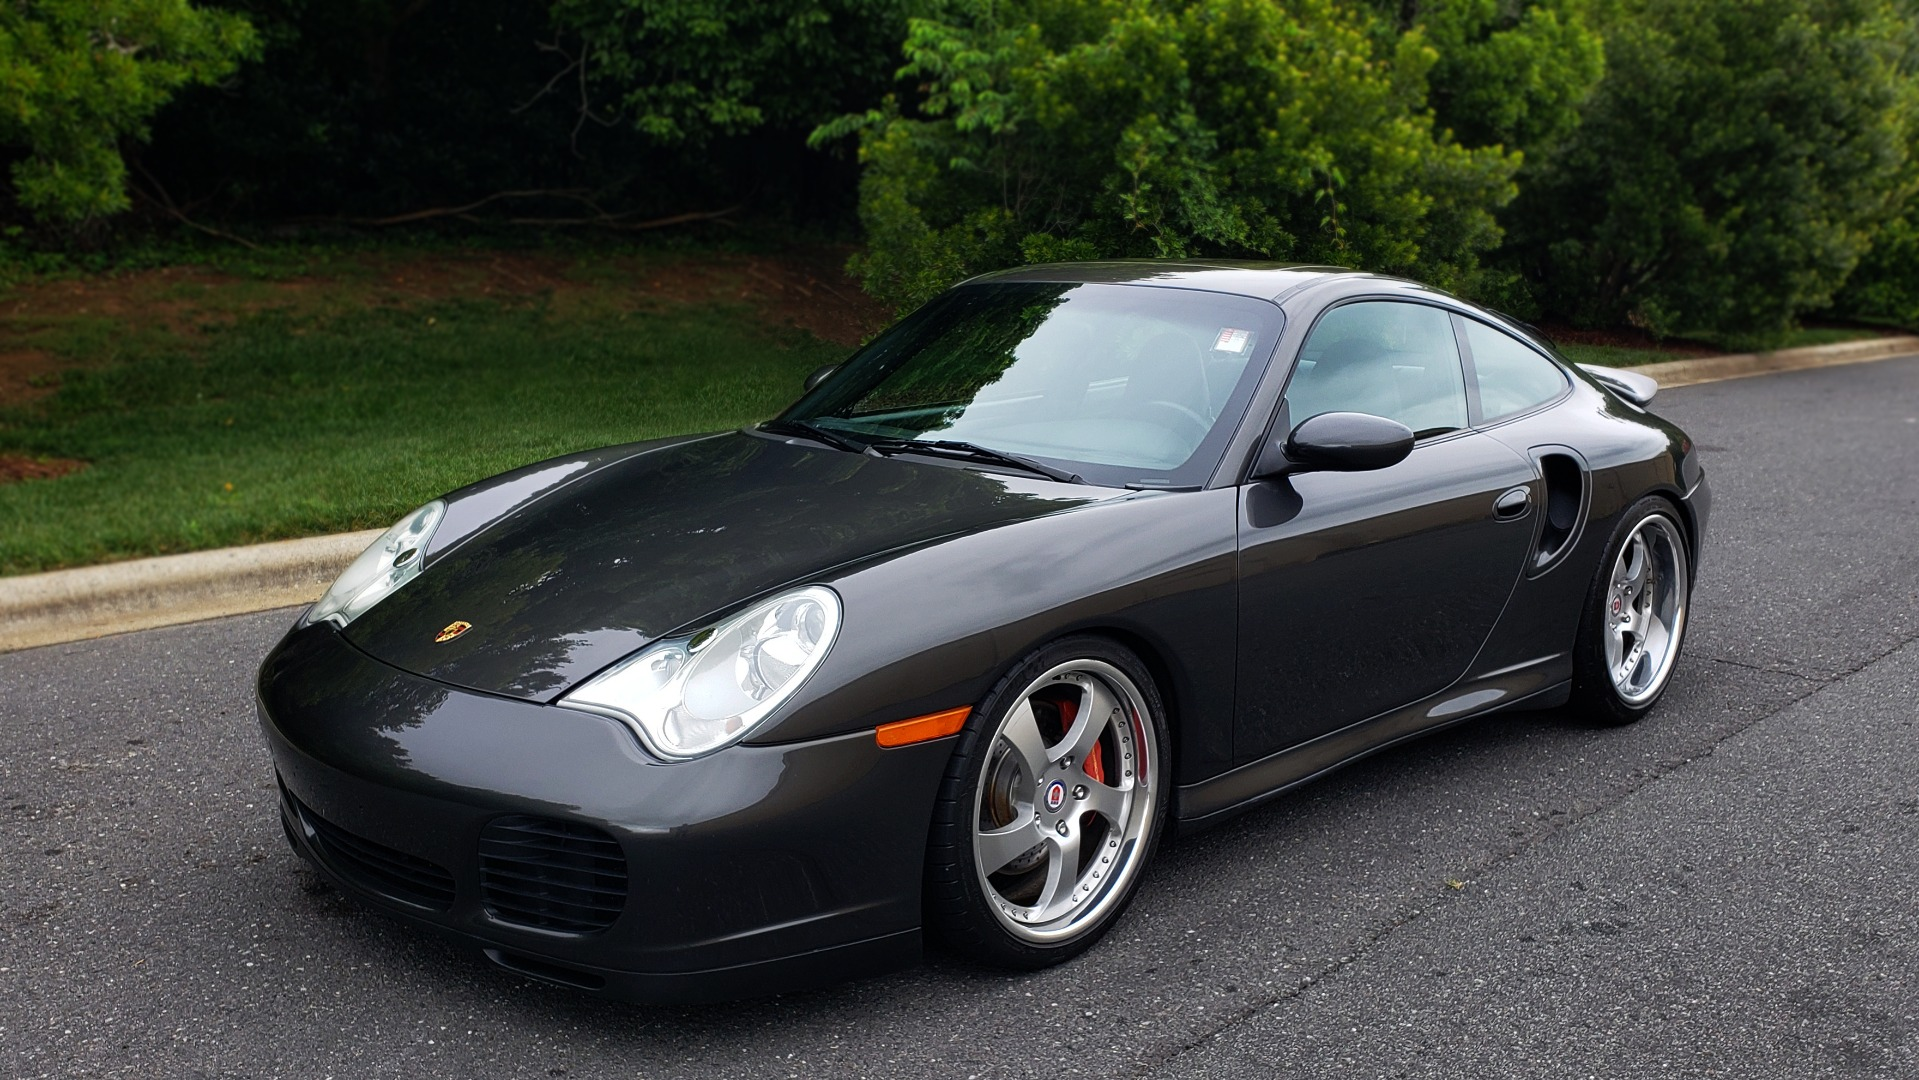 Used 2002 Porsche 911 CARRERA TURBO / 6-SPD MAN / ALPINE / BOSE / PERF UPGRADES for sale $53,995 at Formula Imports in Charlotte NC 28227 2